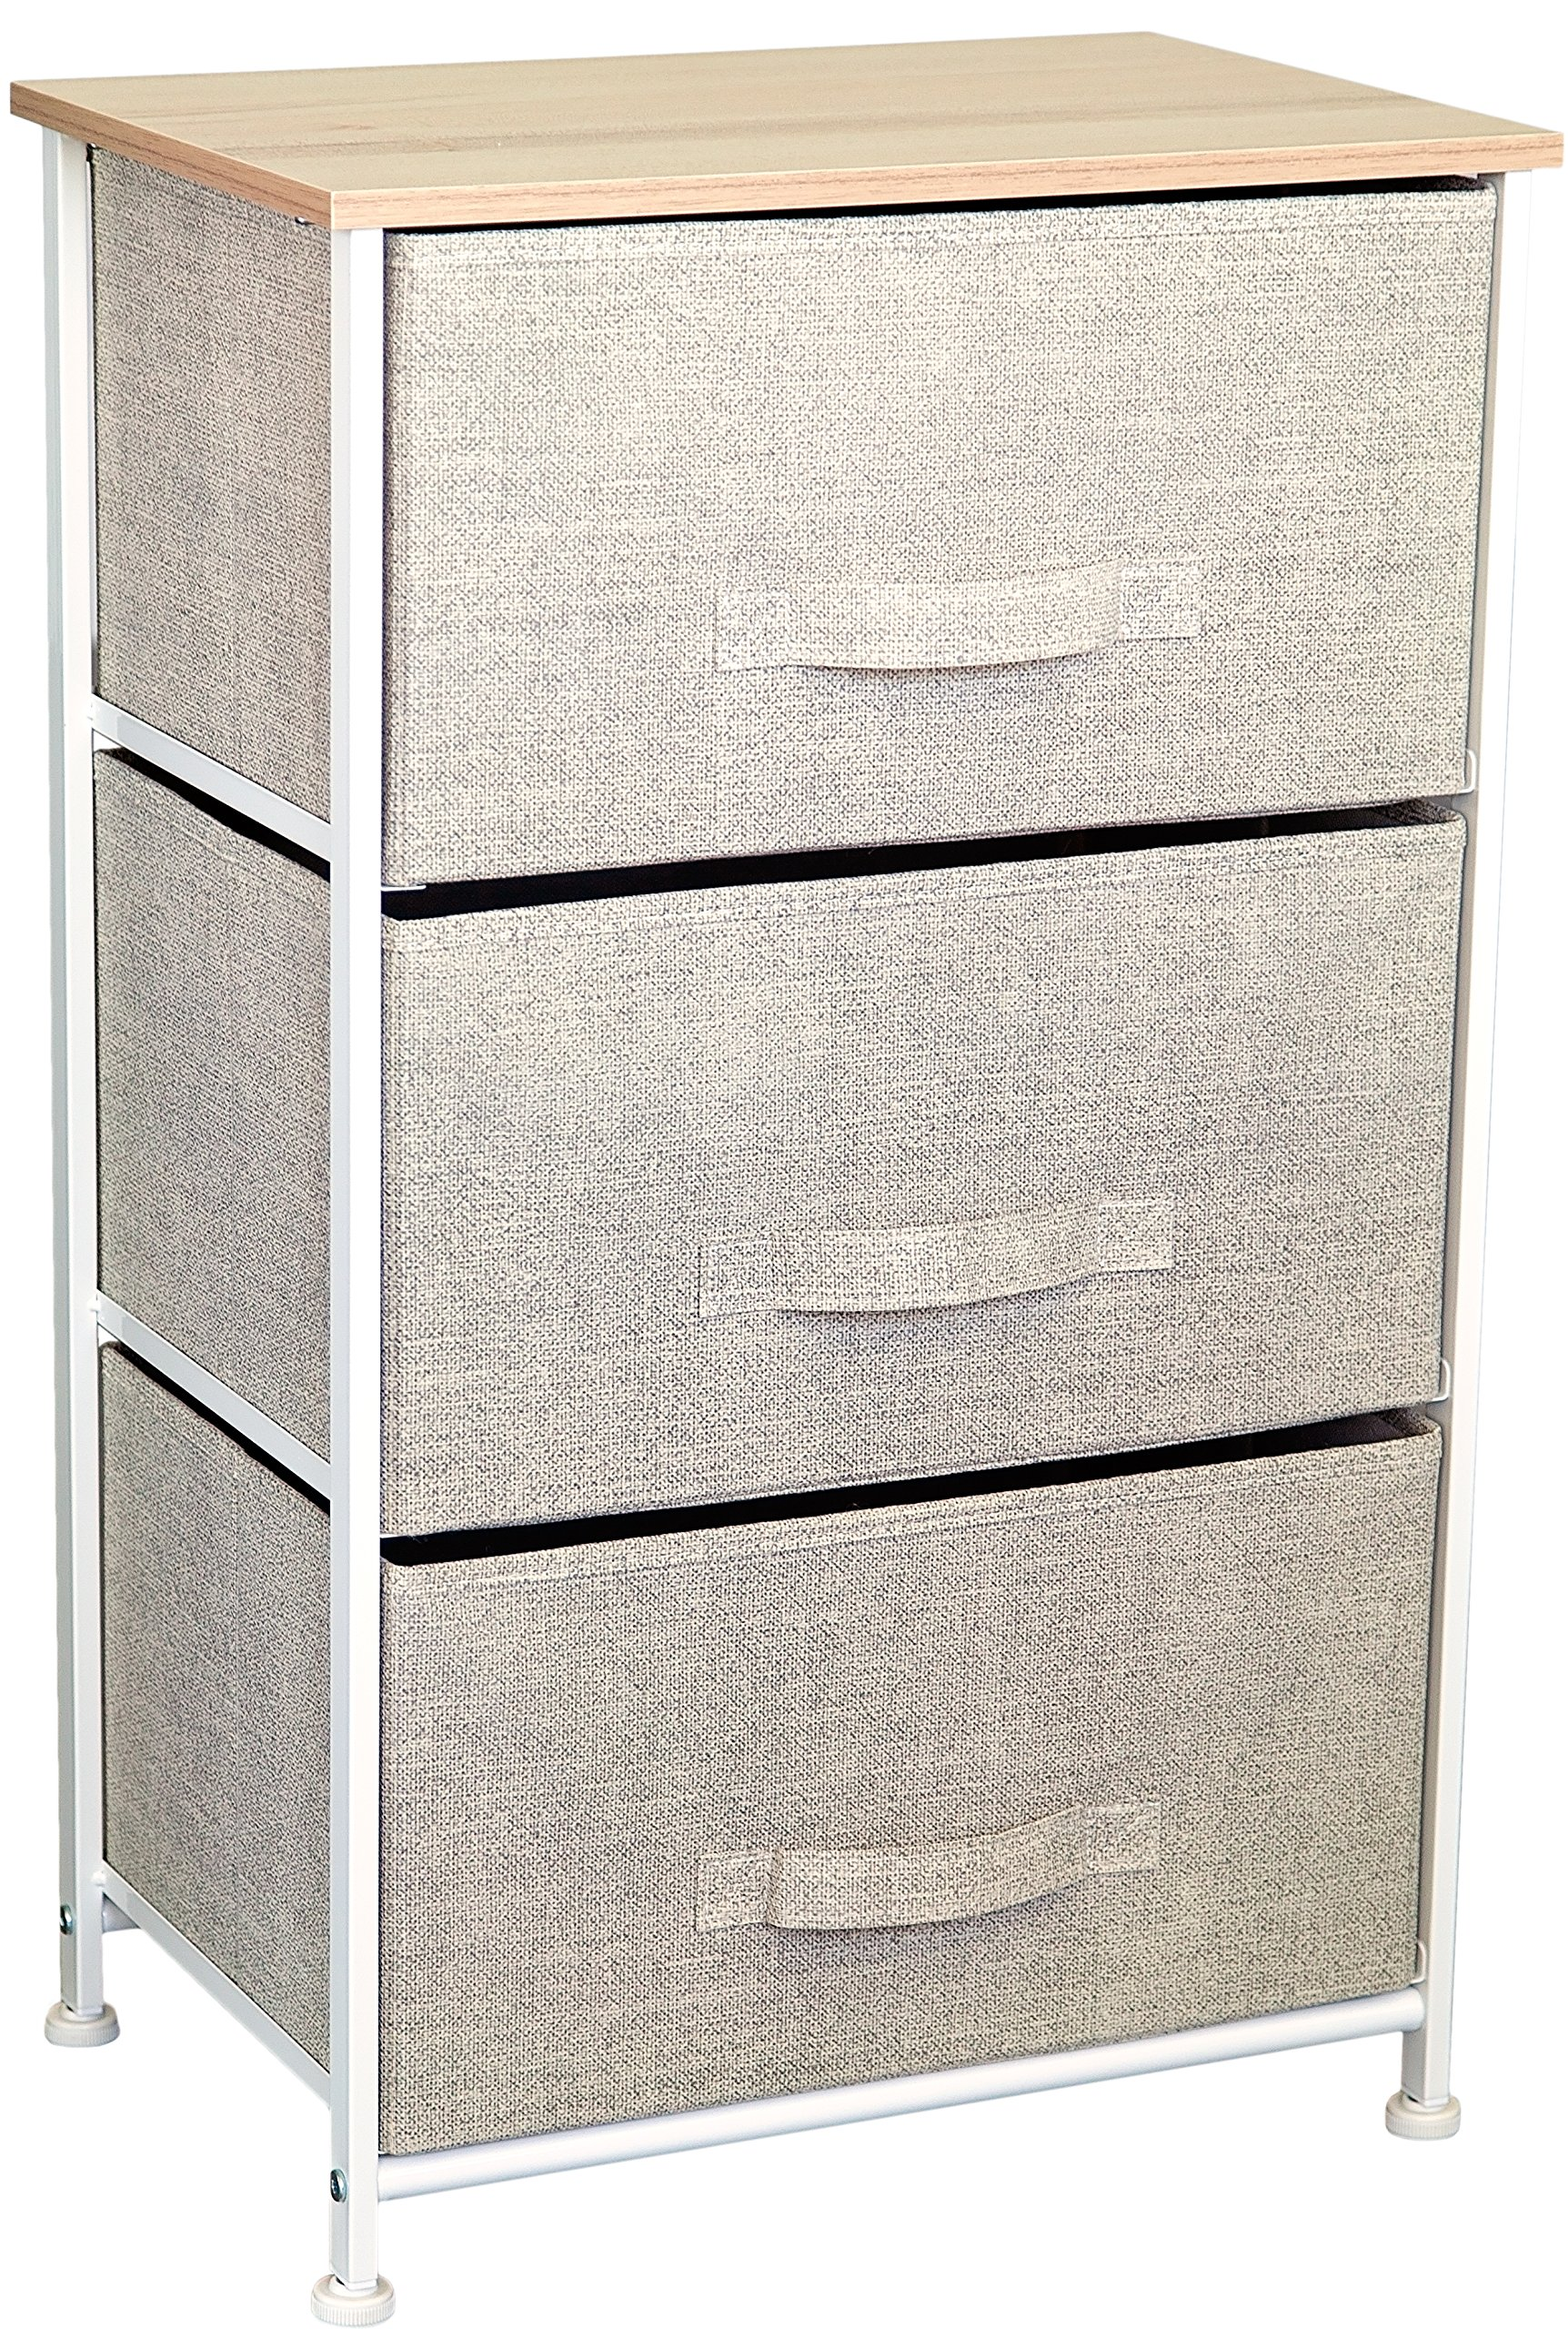 East Loft Nightstand Dresser |Storage Organizer for Closet, Nursery, Bathroom, Laundry or Bedroom | 3 Fabric Drawers, Solid Wood Top, Durable Steel Frame| Natural by East Loft